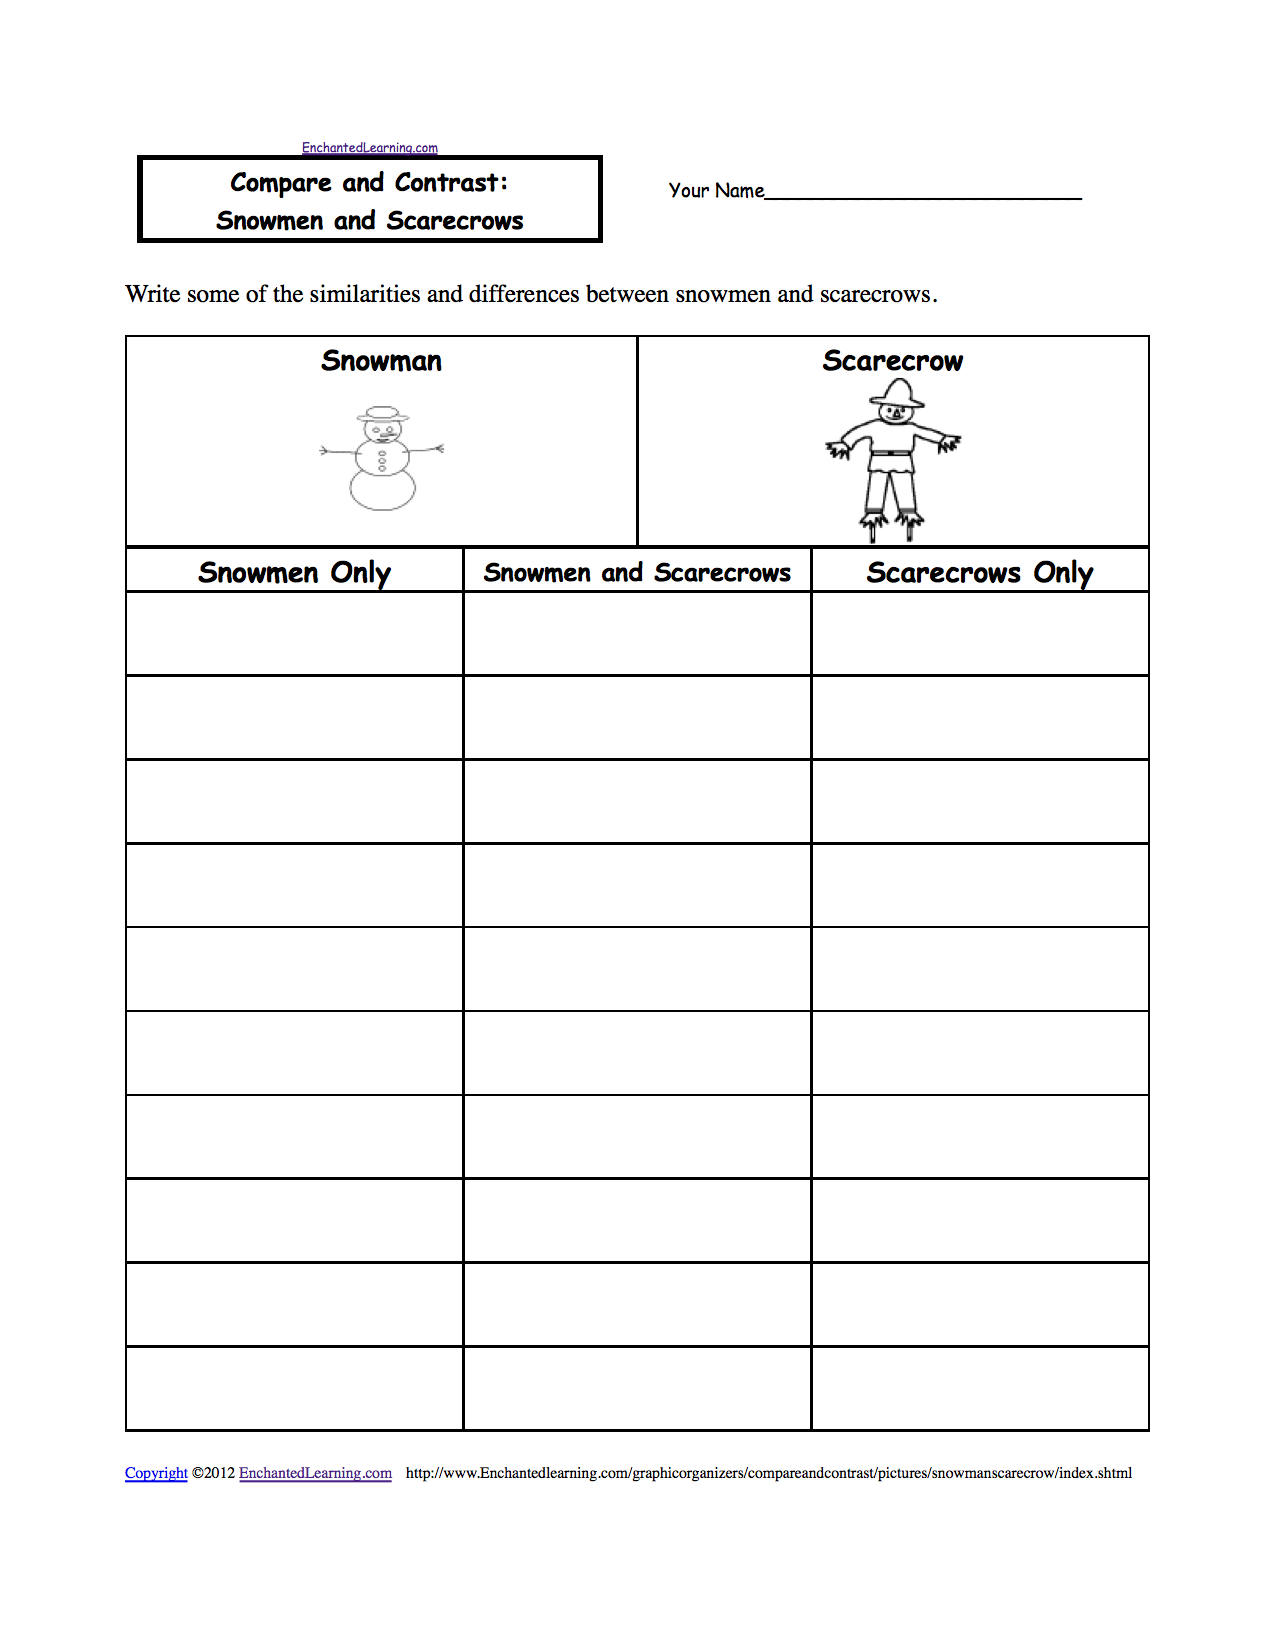 Compare and Contrast Worksheets to Print EnchantedLearning – Compare and Contrast Worksheet